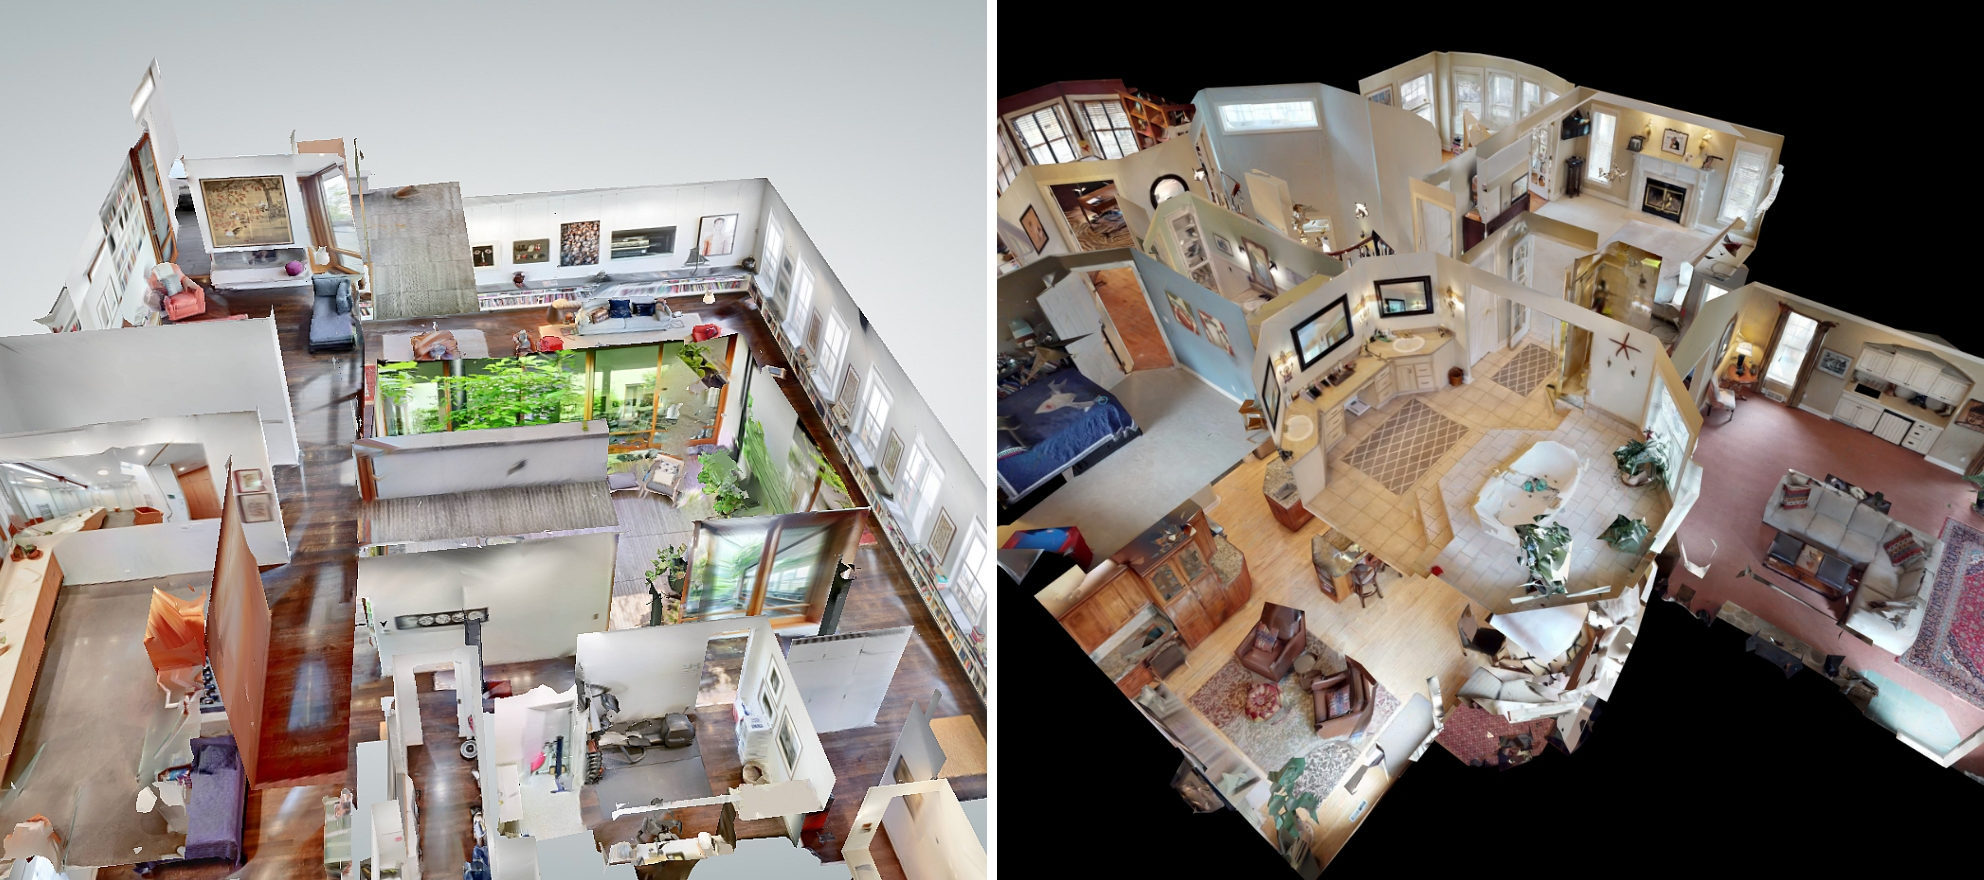 3D imaging companies say Zillow's app is not true 3D